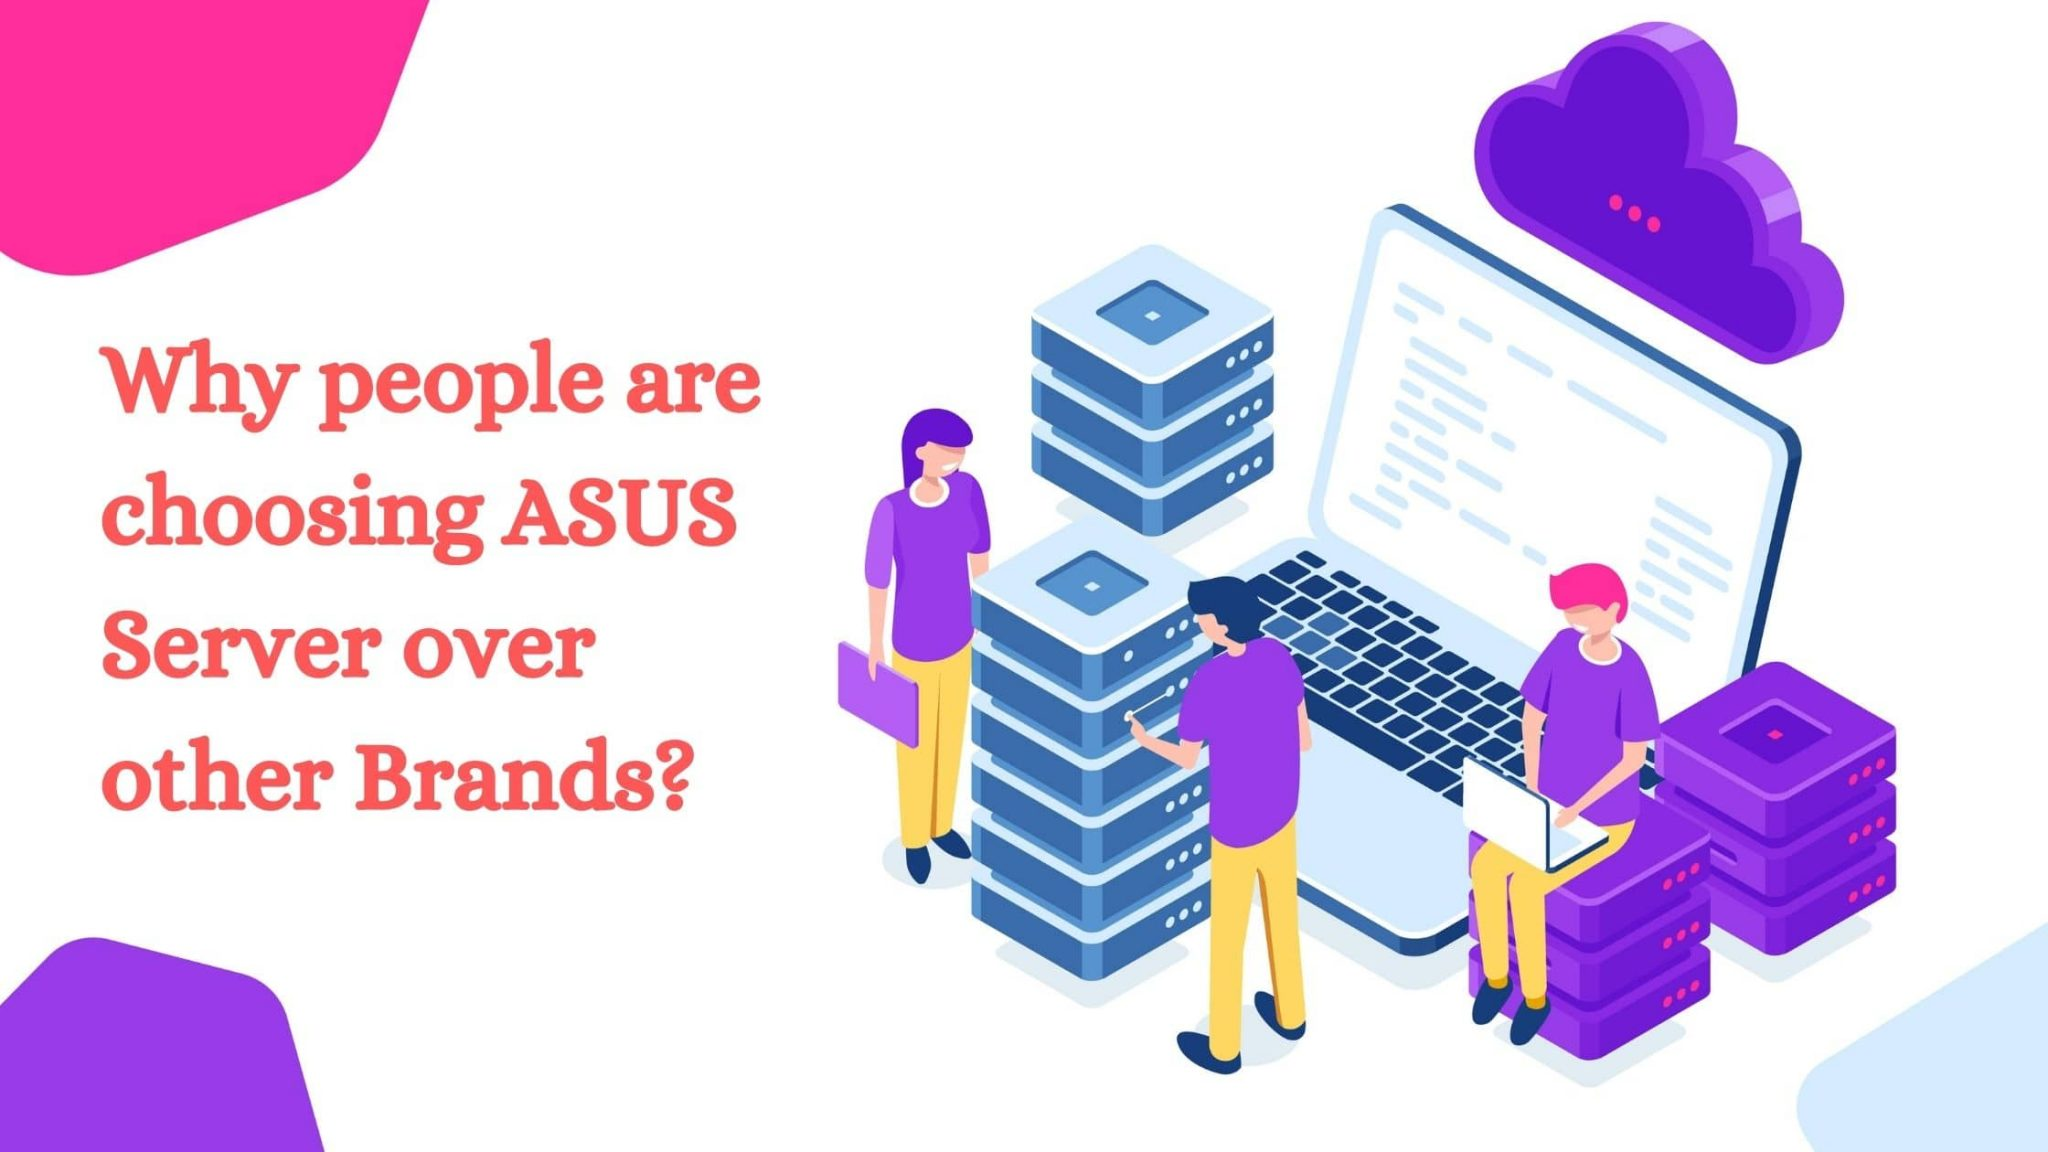 Why people are choosing ASUS Server over other Brands?